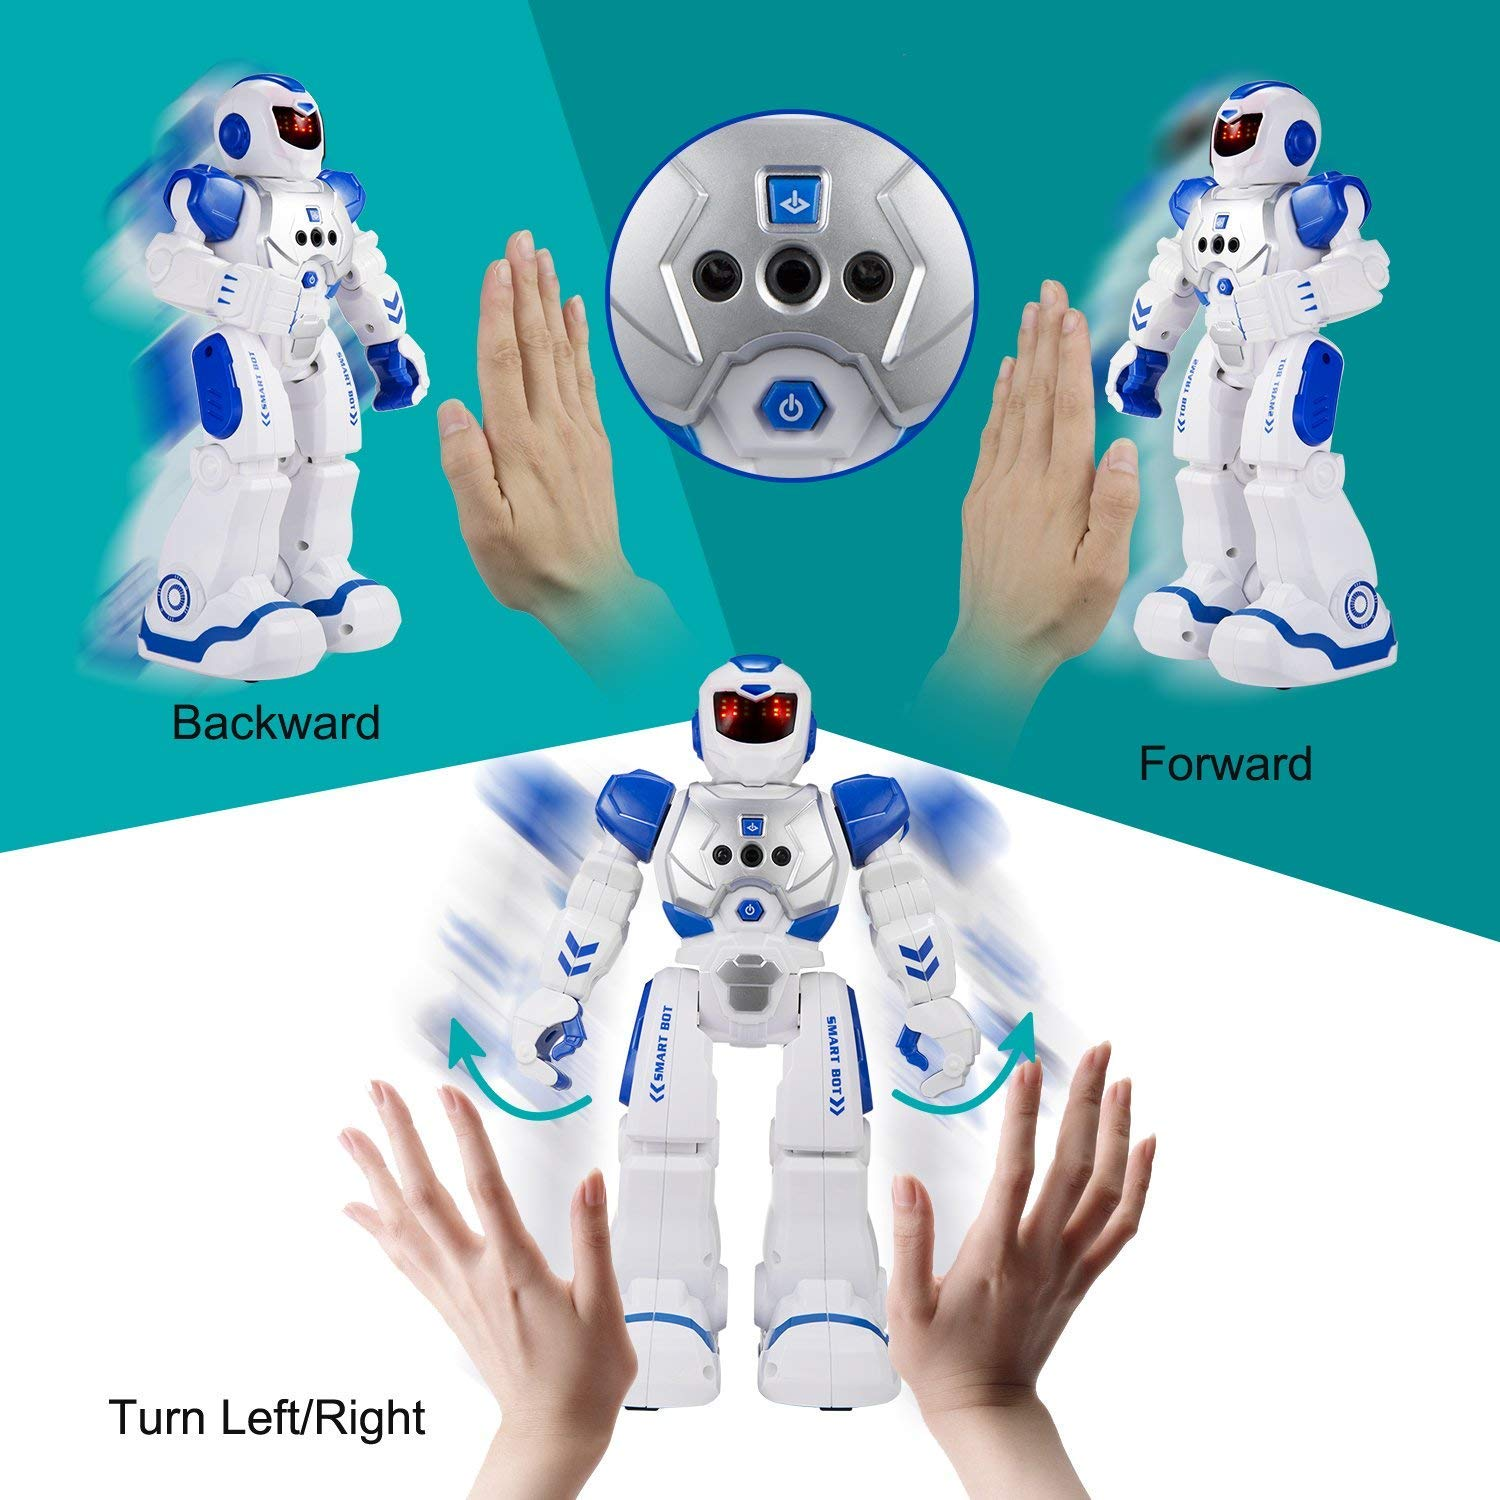 Elemusi Remote Wireless Control Robot for Kids Toys,Smart Robots with Singing,Dancing,Gesture Sensing Entertainment Robotics for Children (Blue) by Elemusi (Image #5)